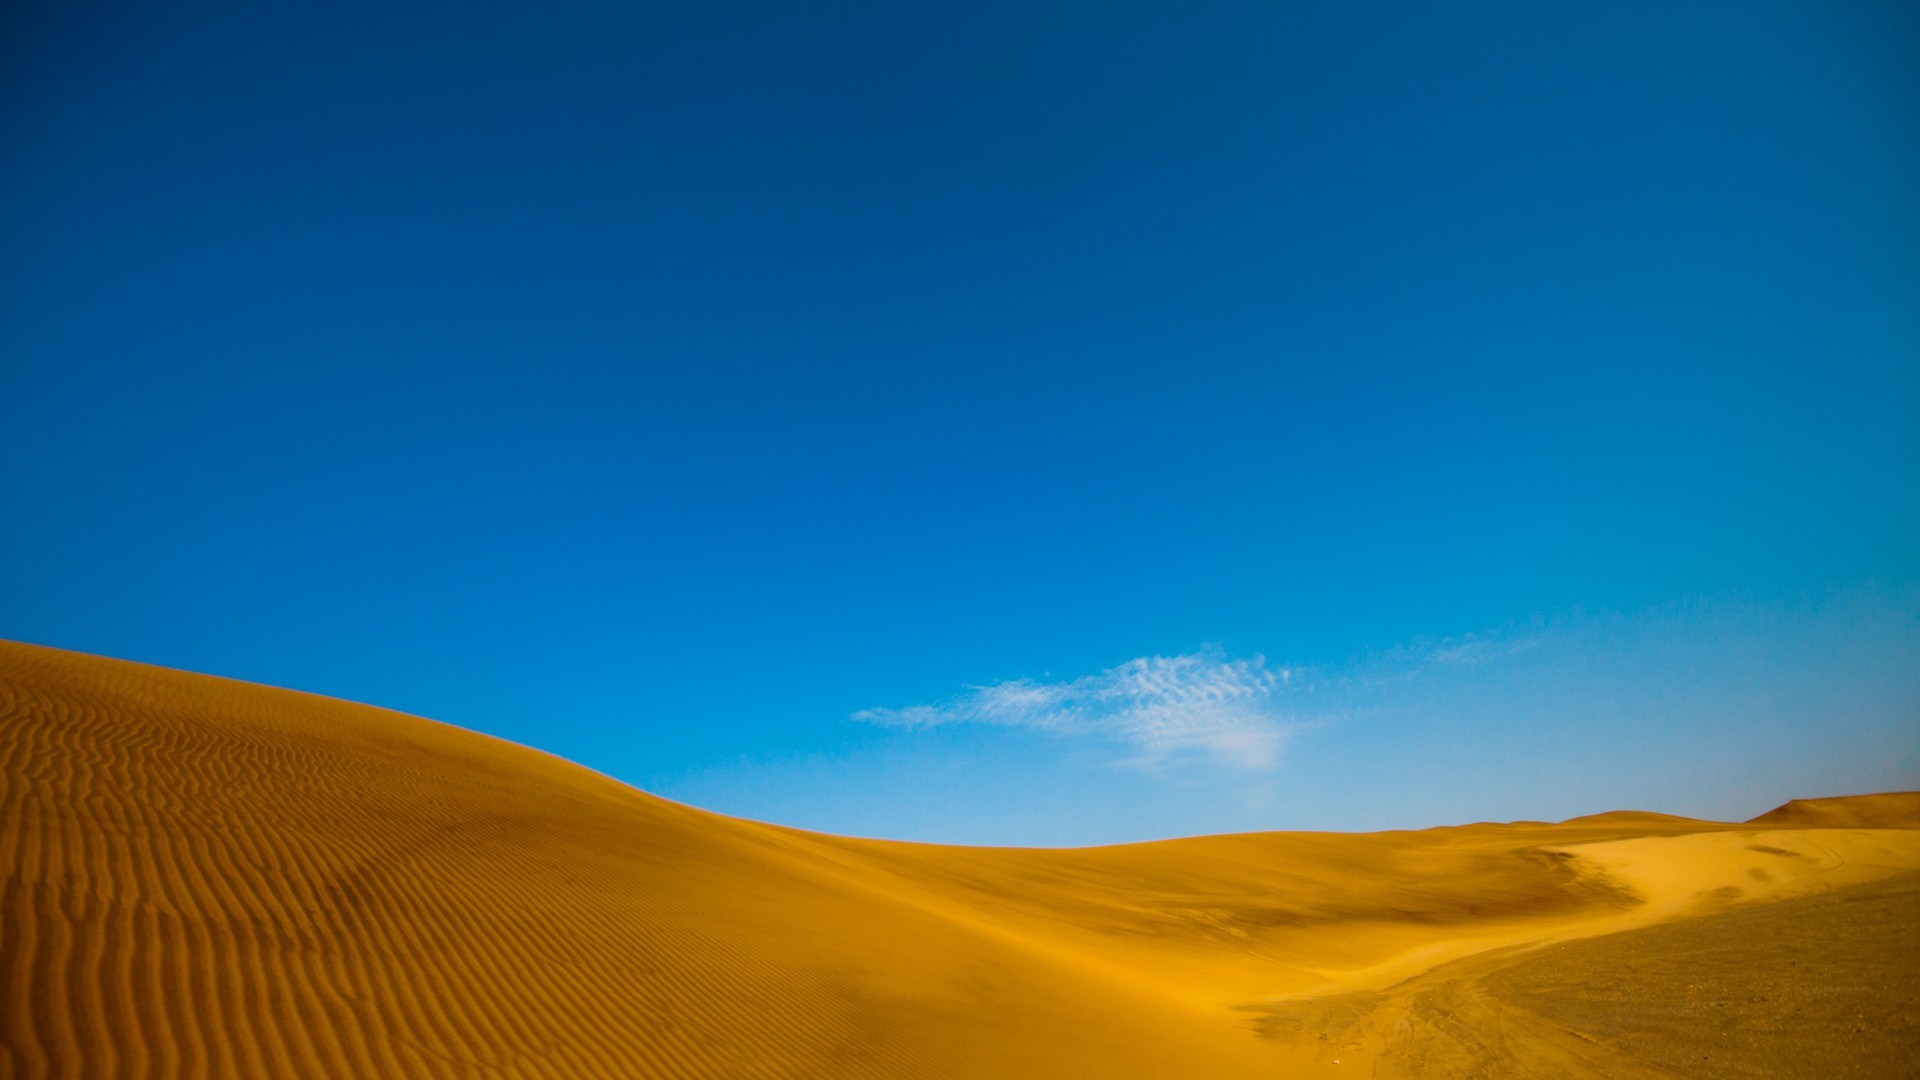 Blue sky over yellow sand desert wallpapers and images - wallpapers ...